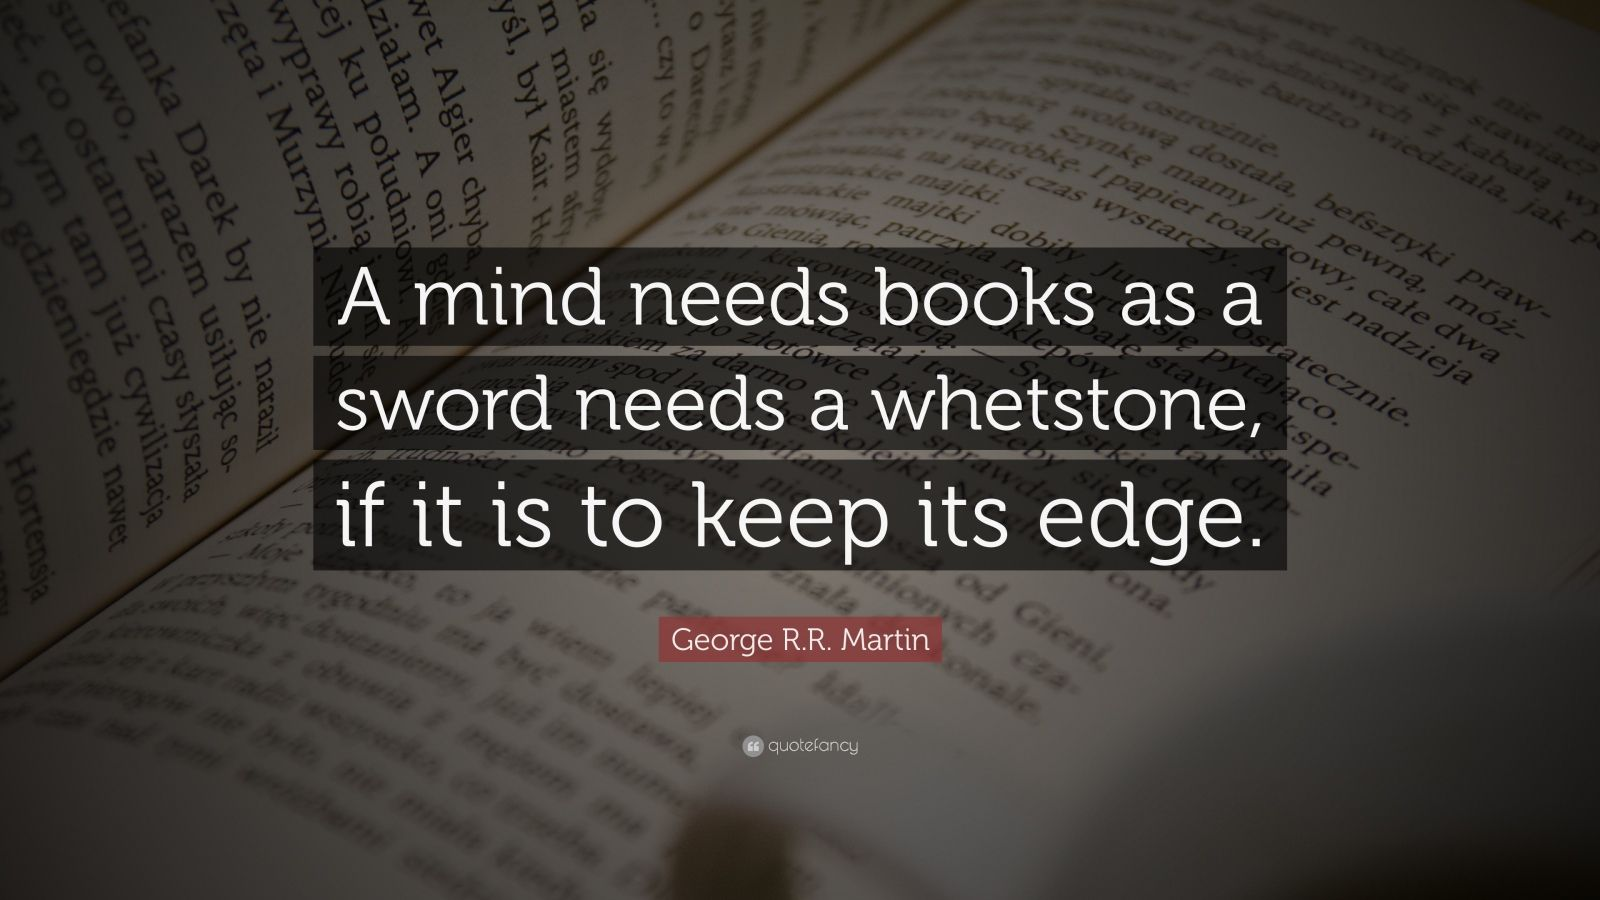 Quotes About Books And Reading (22 Wallpapers)